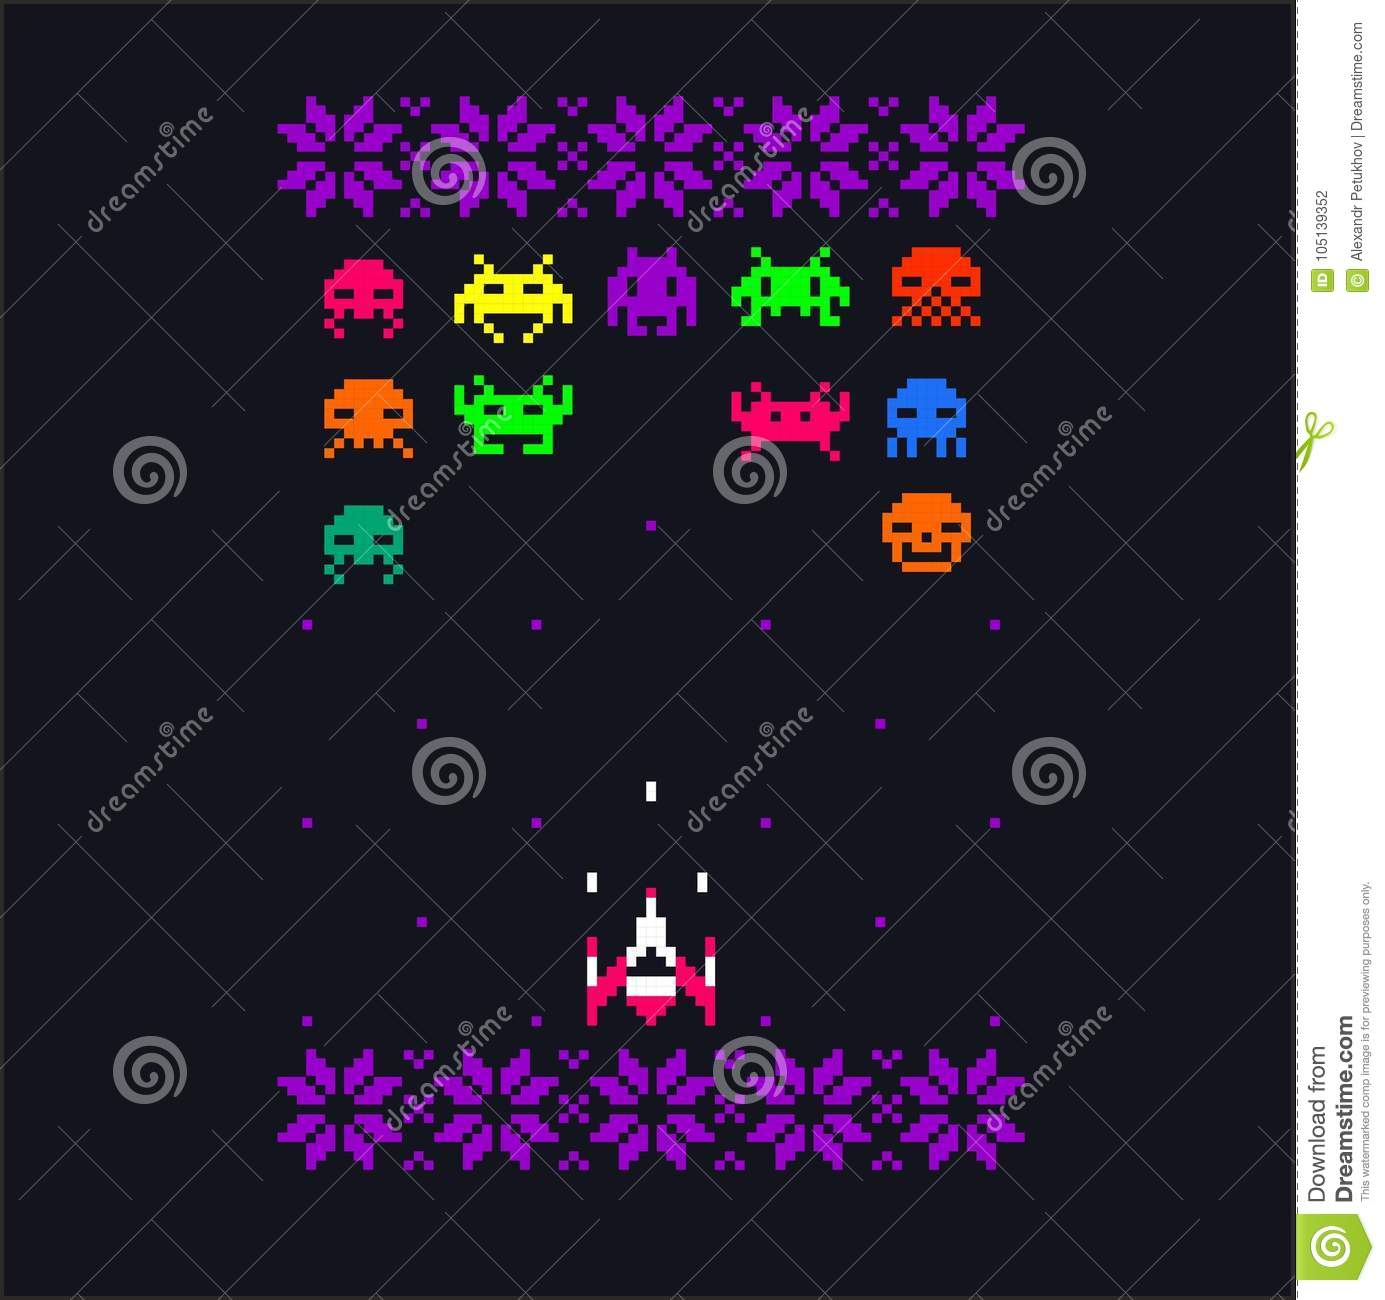 Vintage 8 Video Game 8 Bit Space Aliens Spaceship Pixel Art With